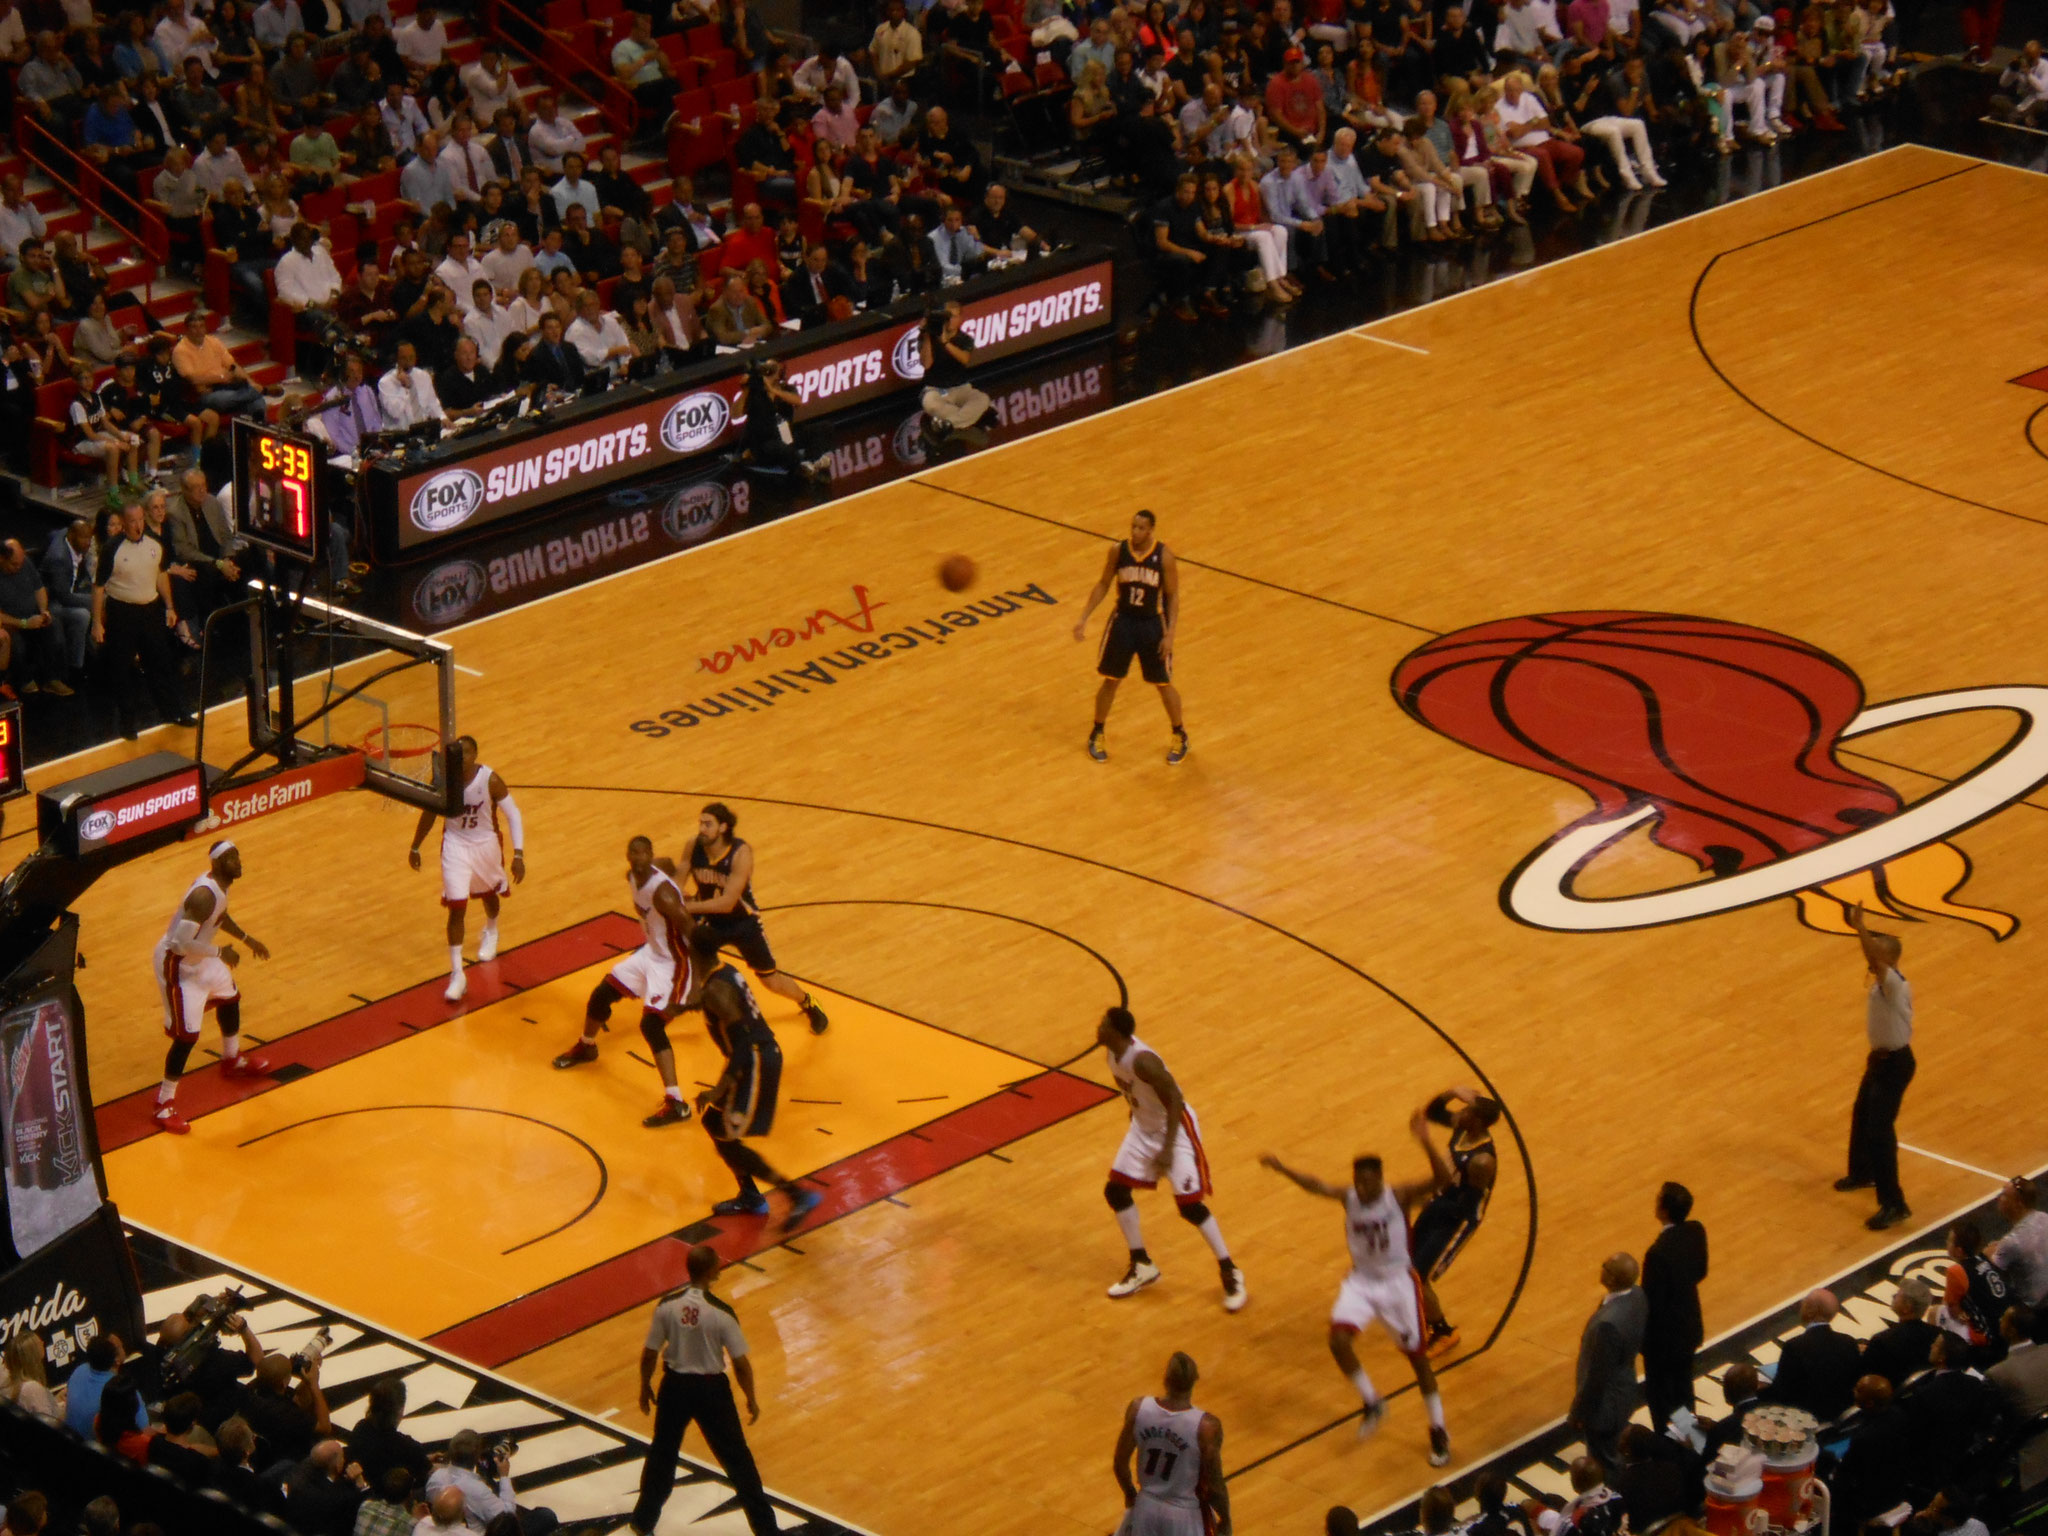 Miami Heat vs Indiana Pacers (2013/14)